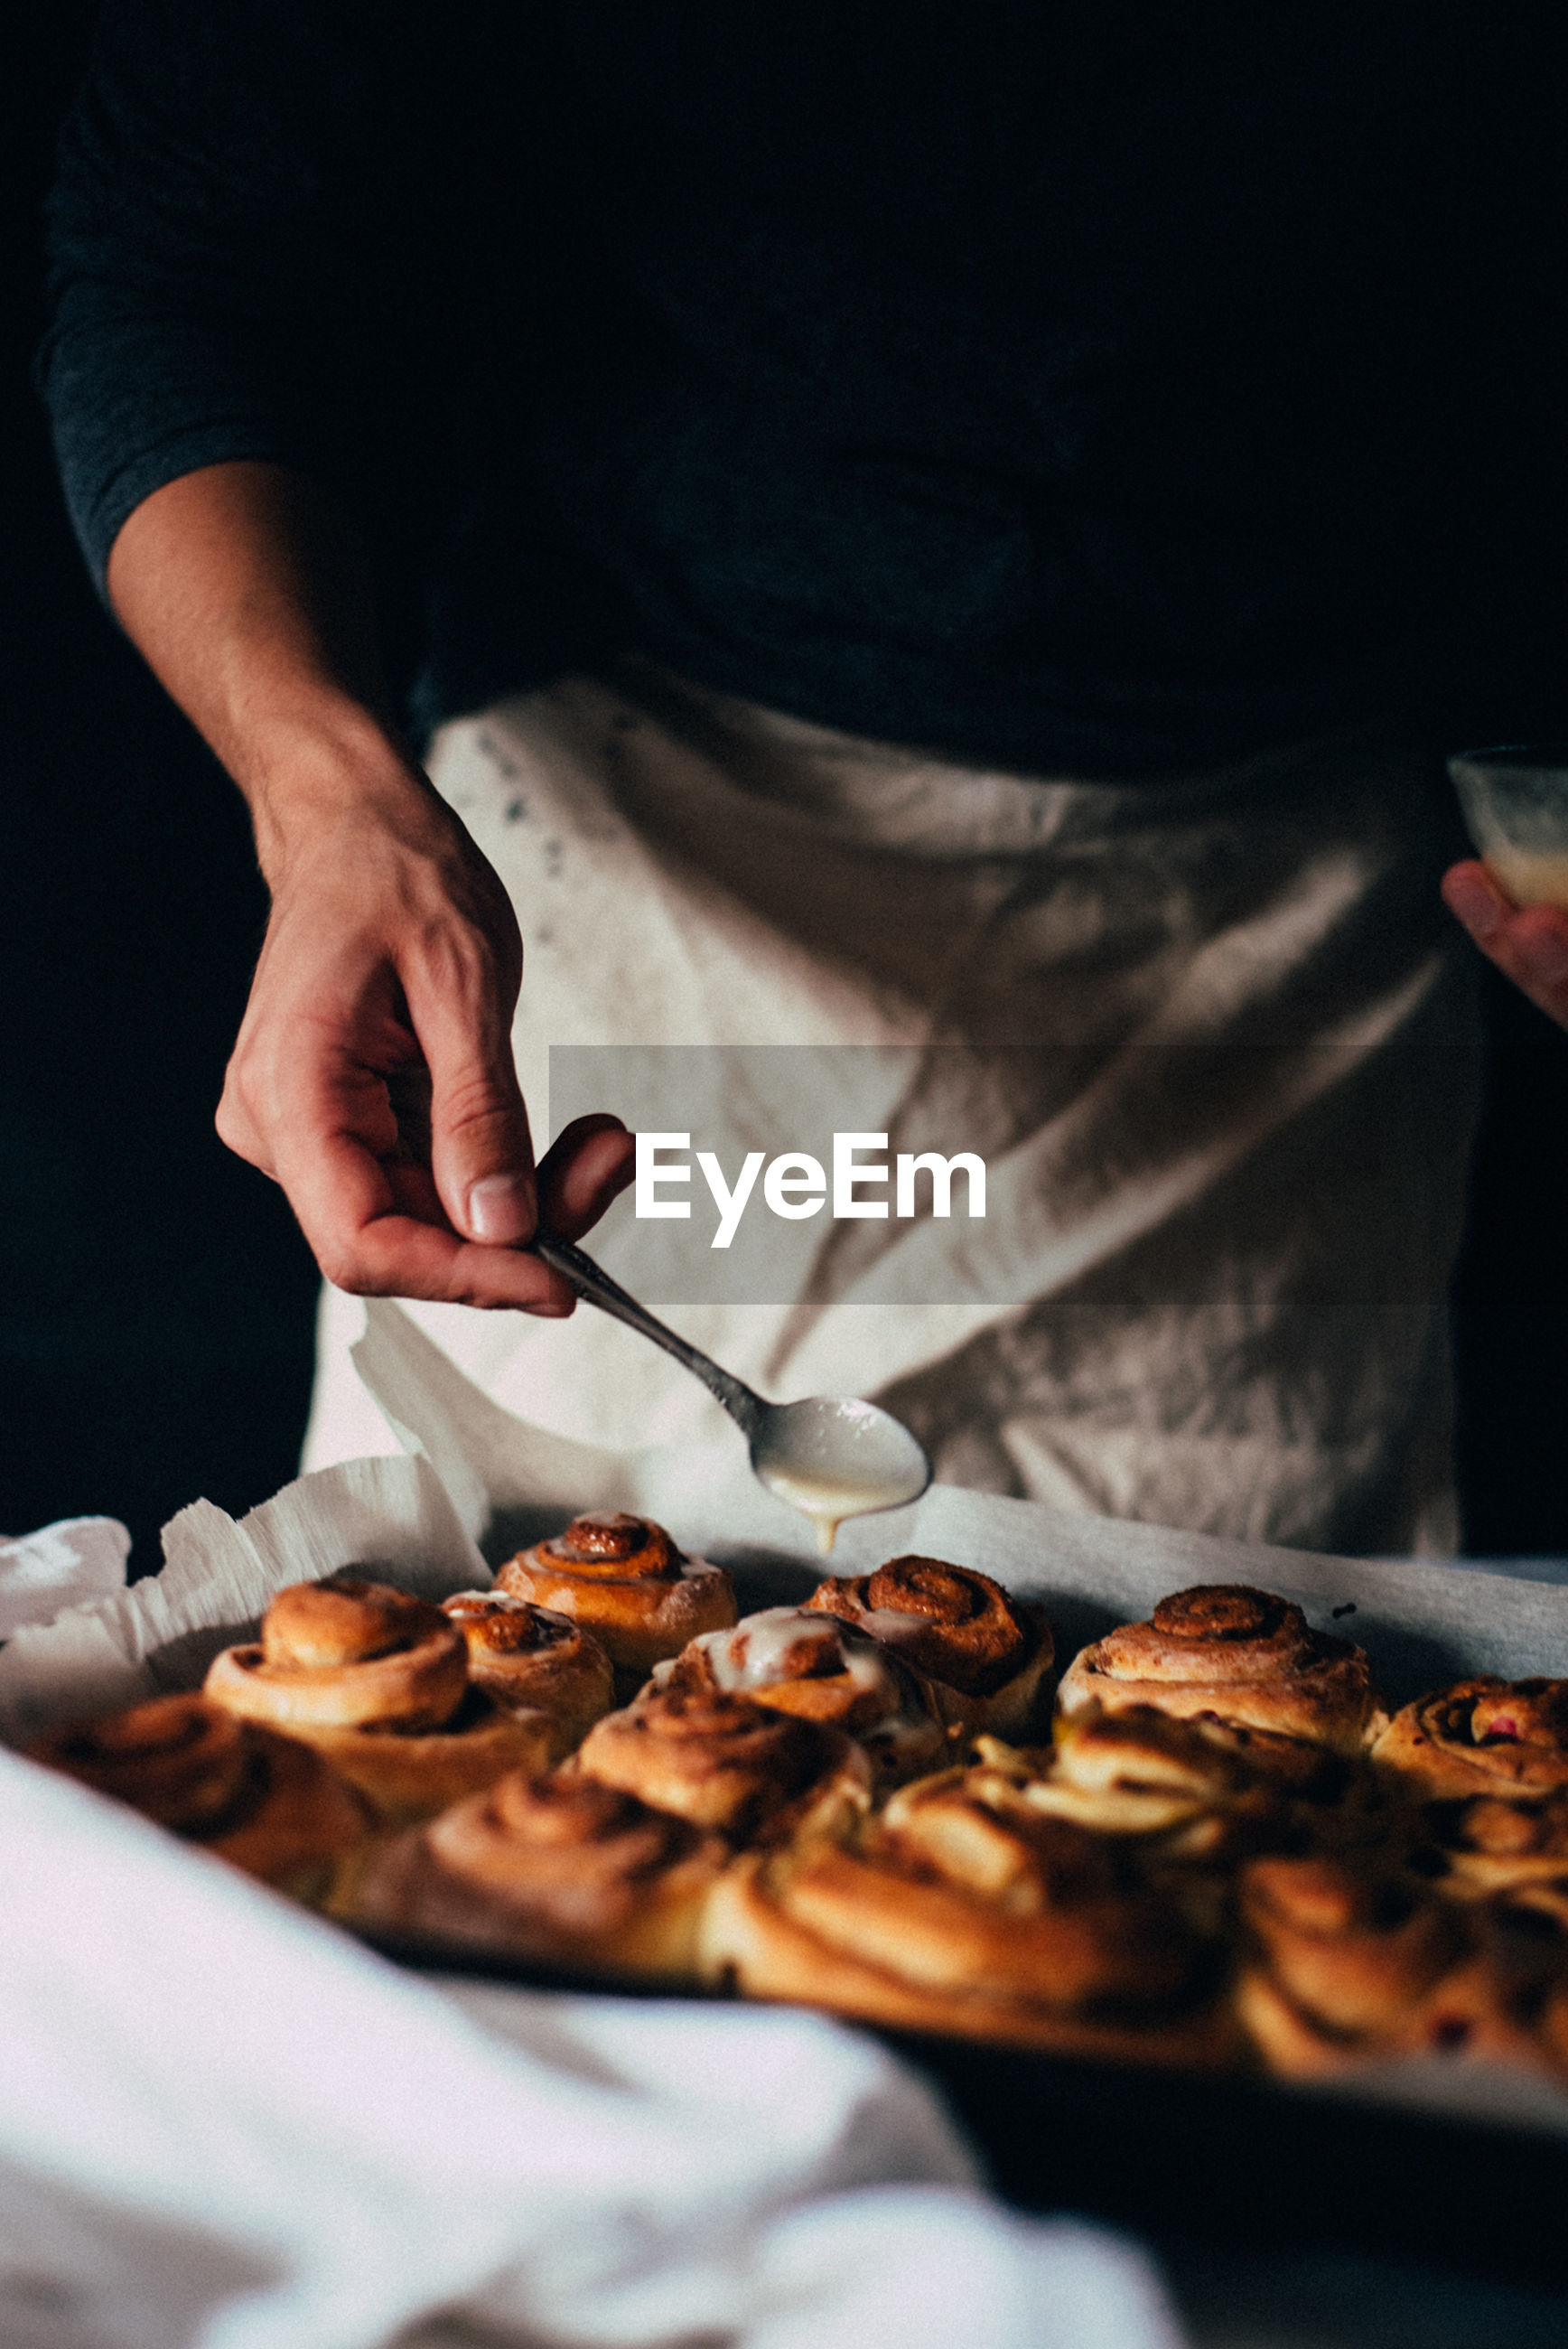 Midsection of person making cinnamon buns in tray